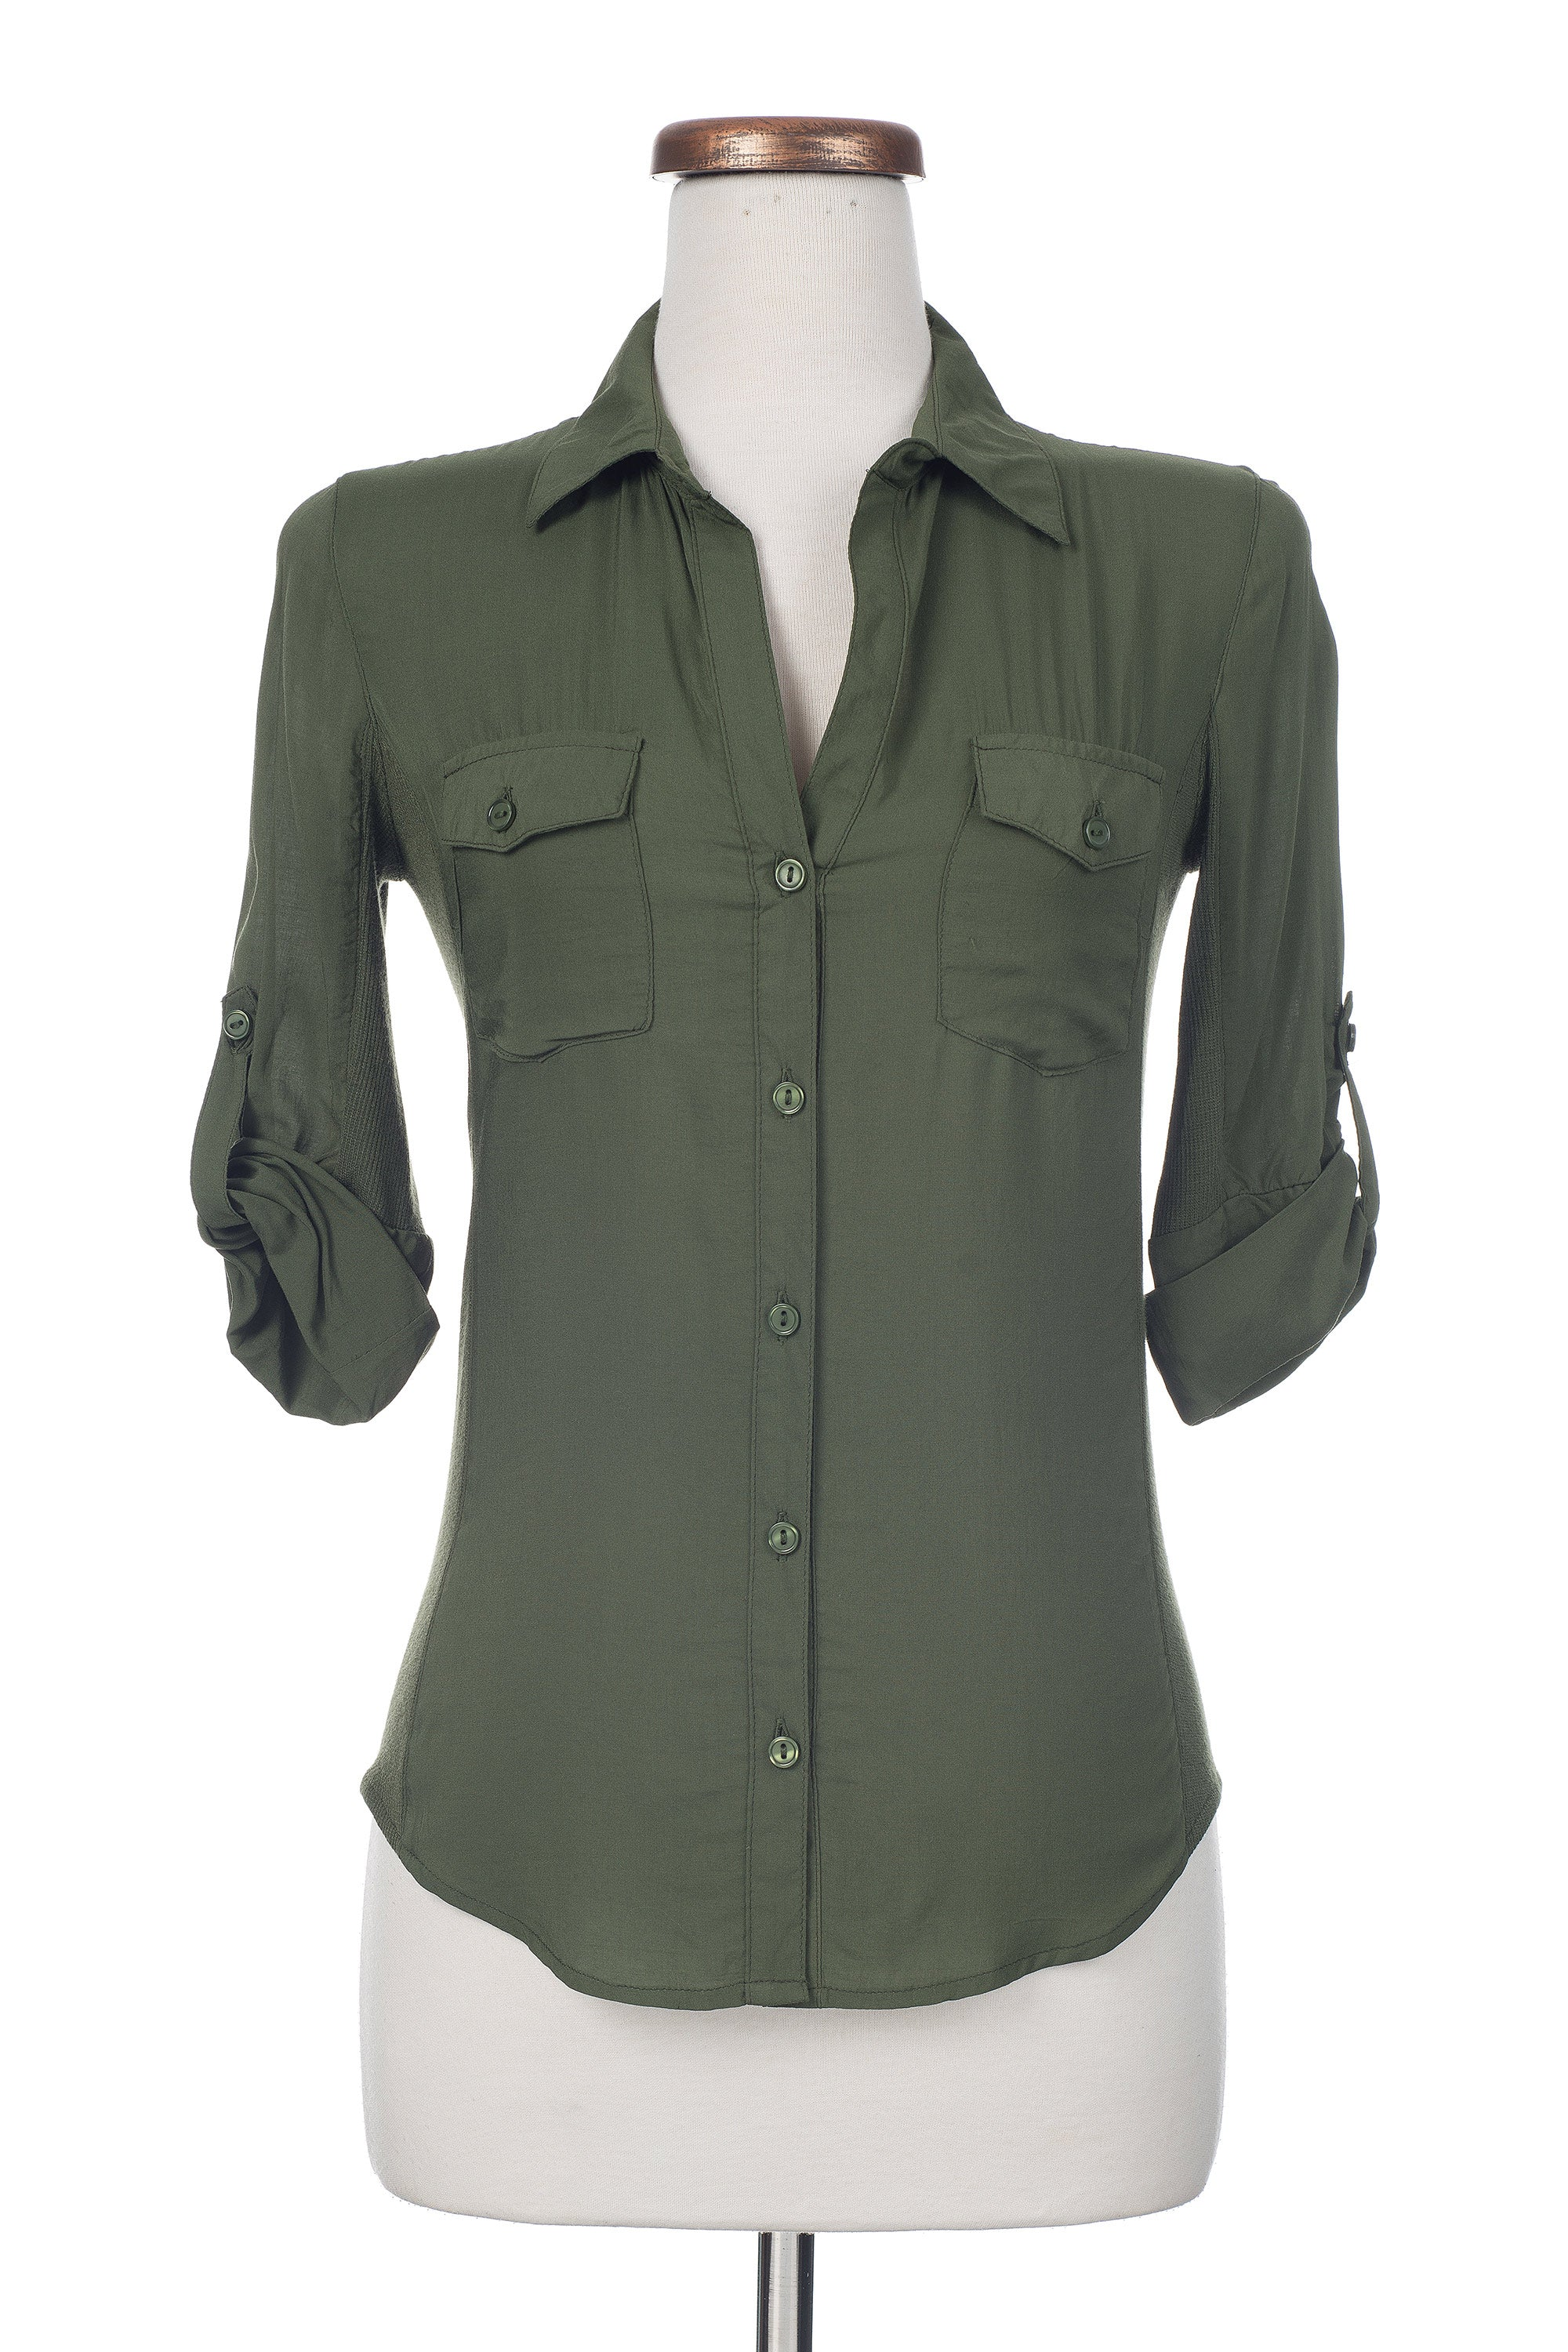 Type 3 Army Green Top